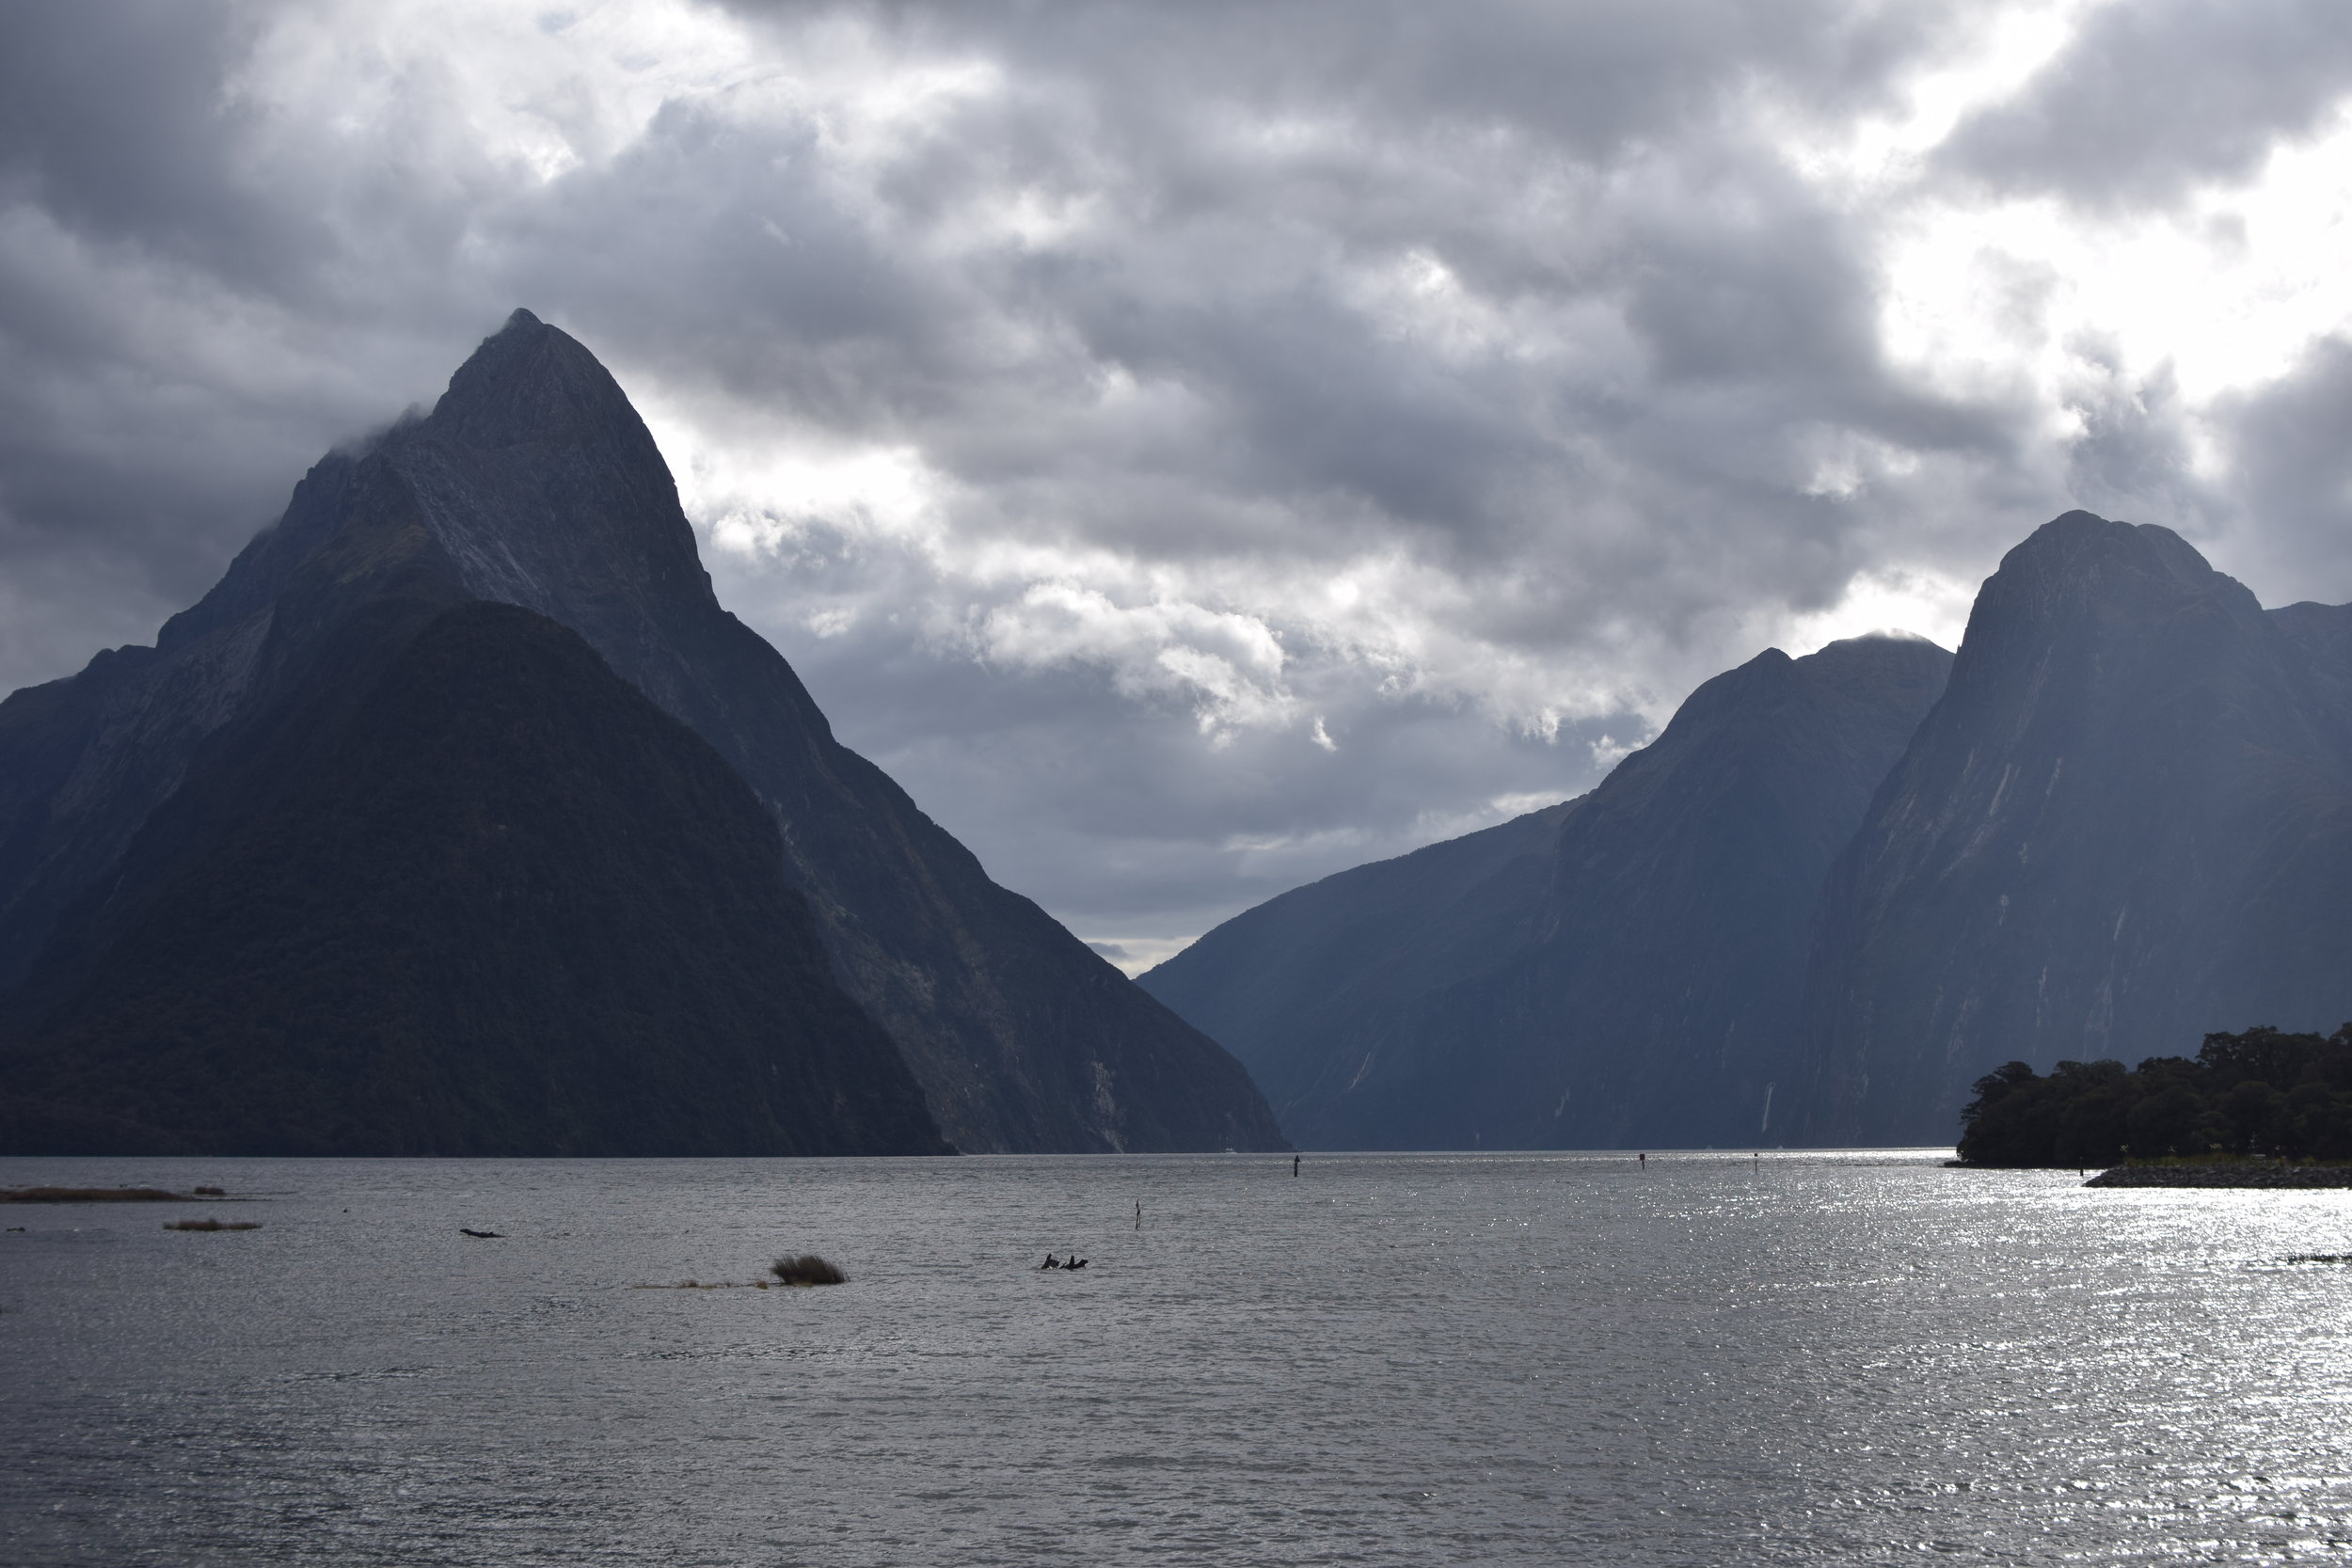 KANO Travel & Trip to Milford Sound | New Zealand